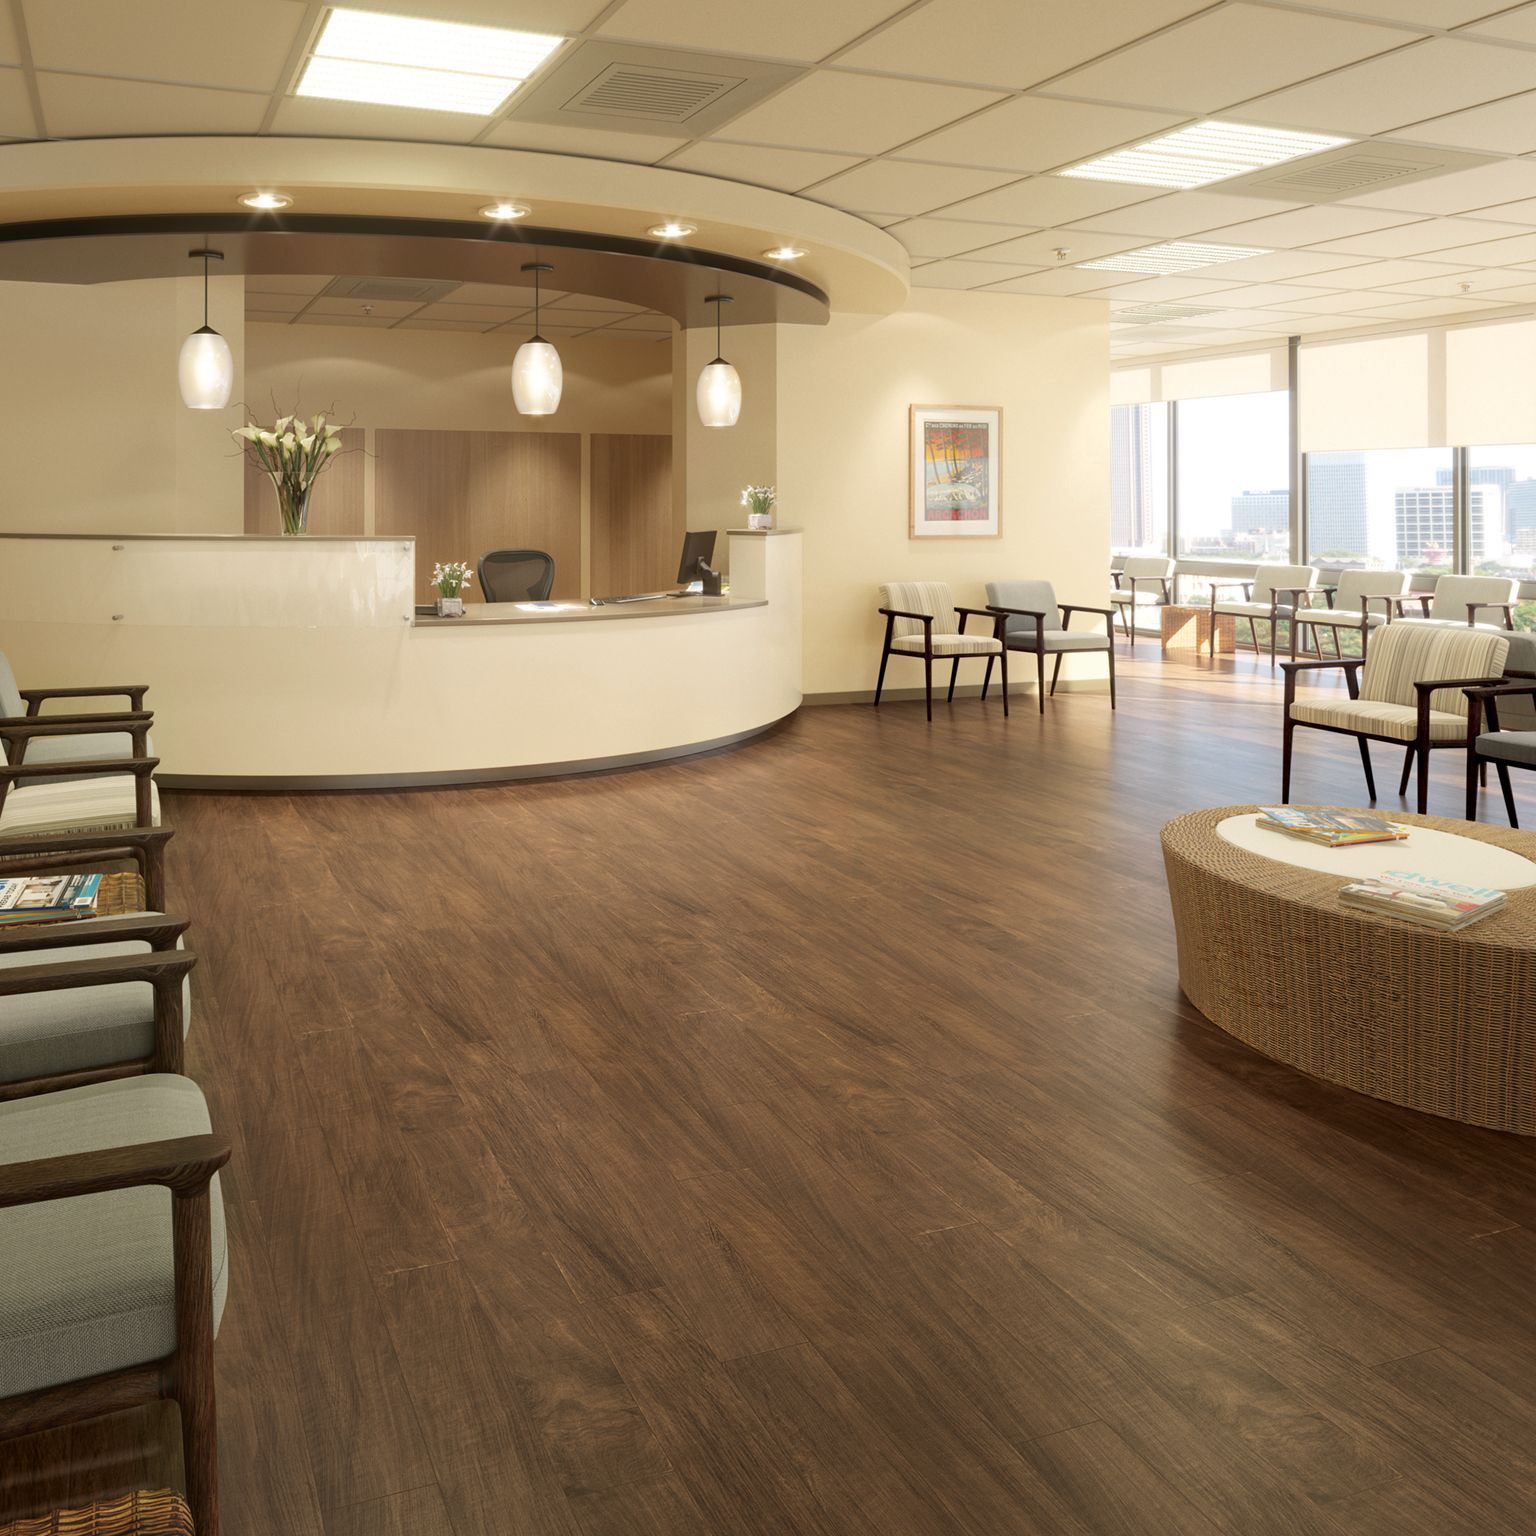 Need flooring for your office, business, or other